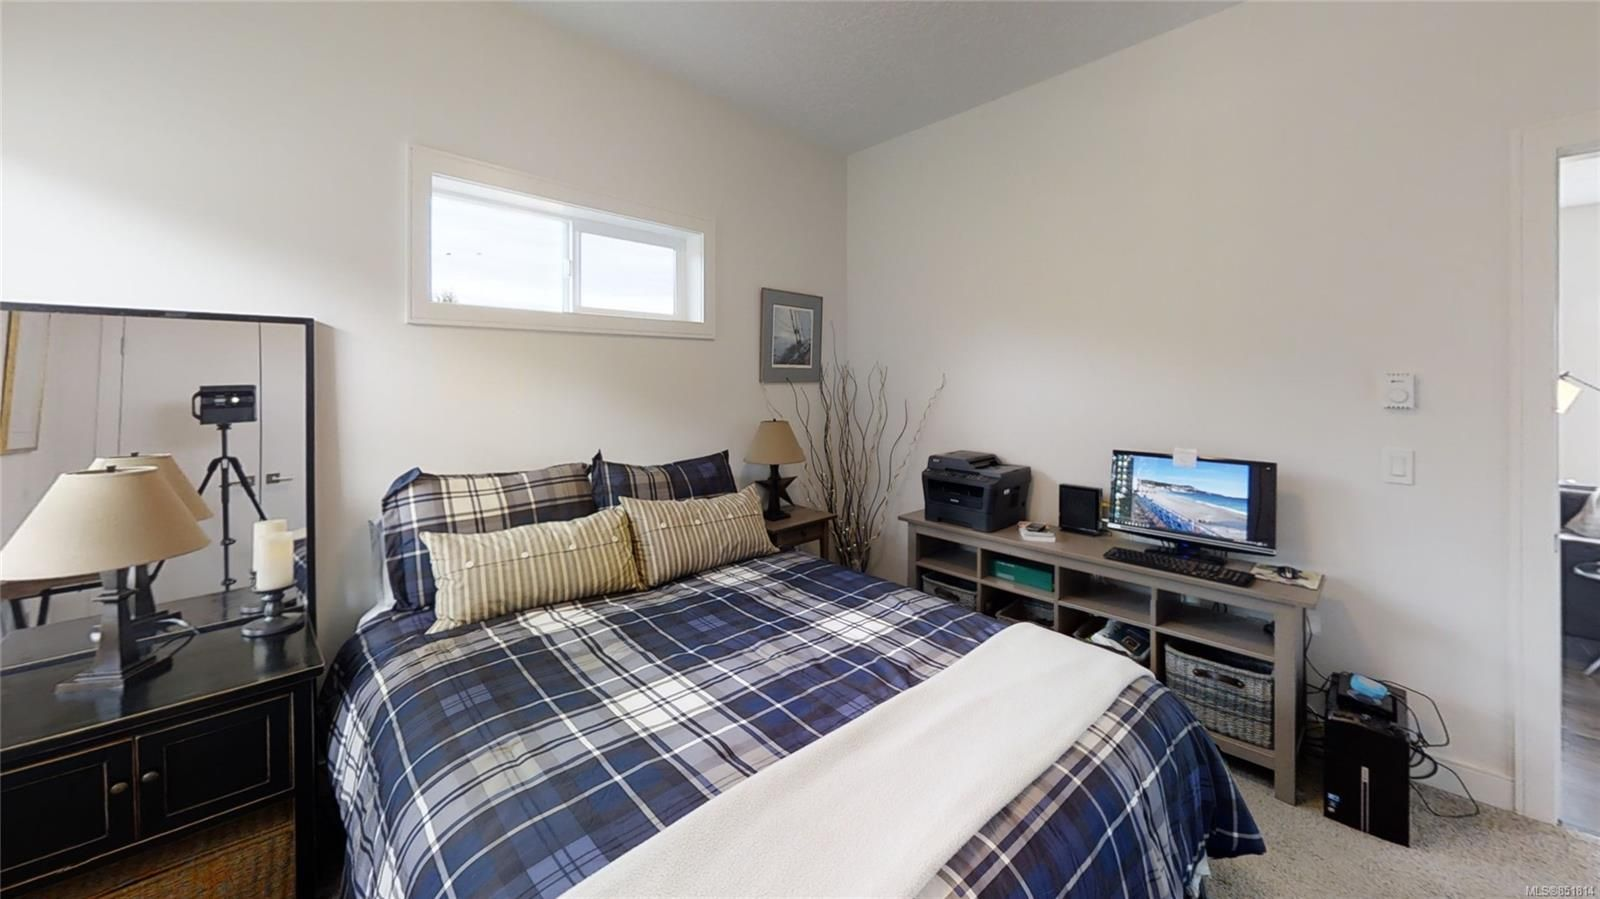 Photo 45: Photos: 191 Muschamp Rd in : CV Union Bay/Fanny Bay House for sale (Comox Valley)  : MLS®# 851814